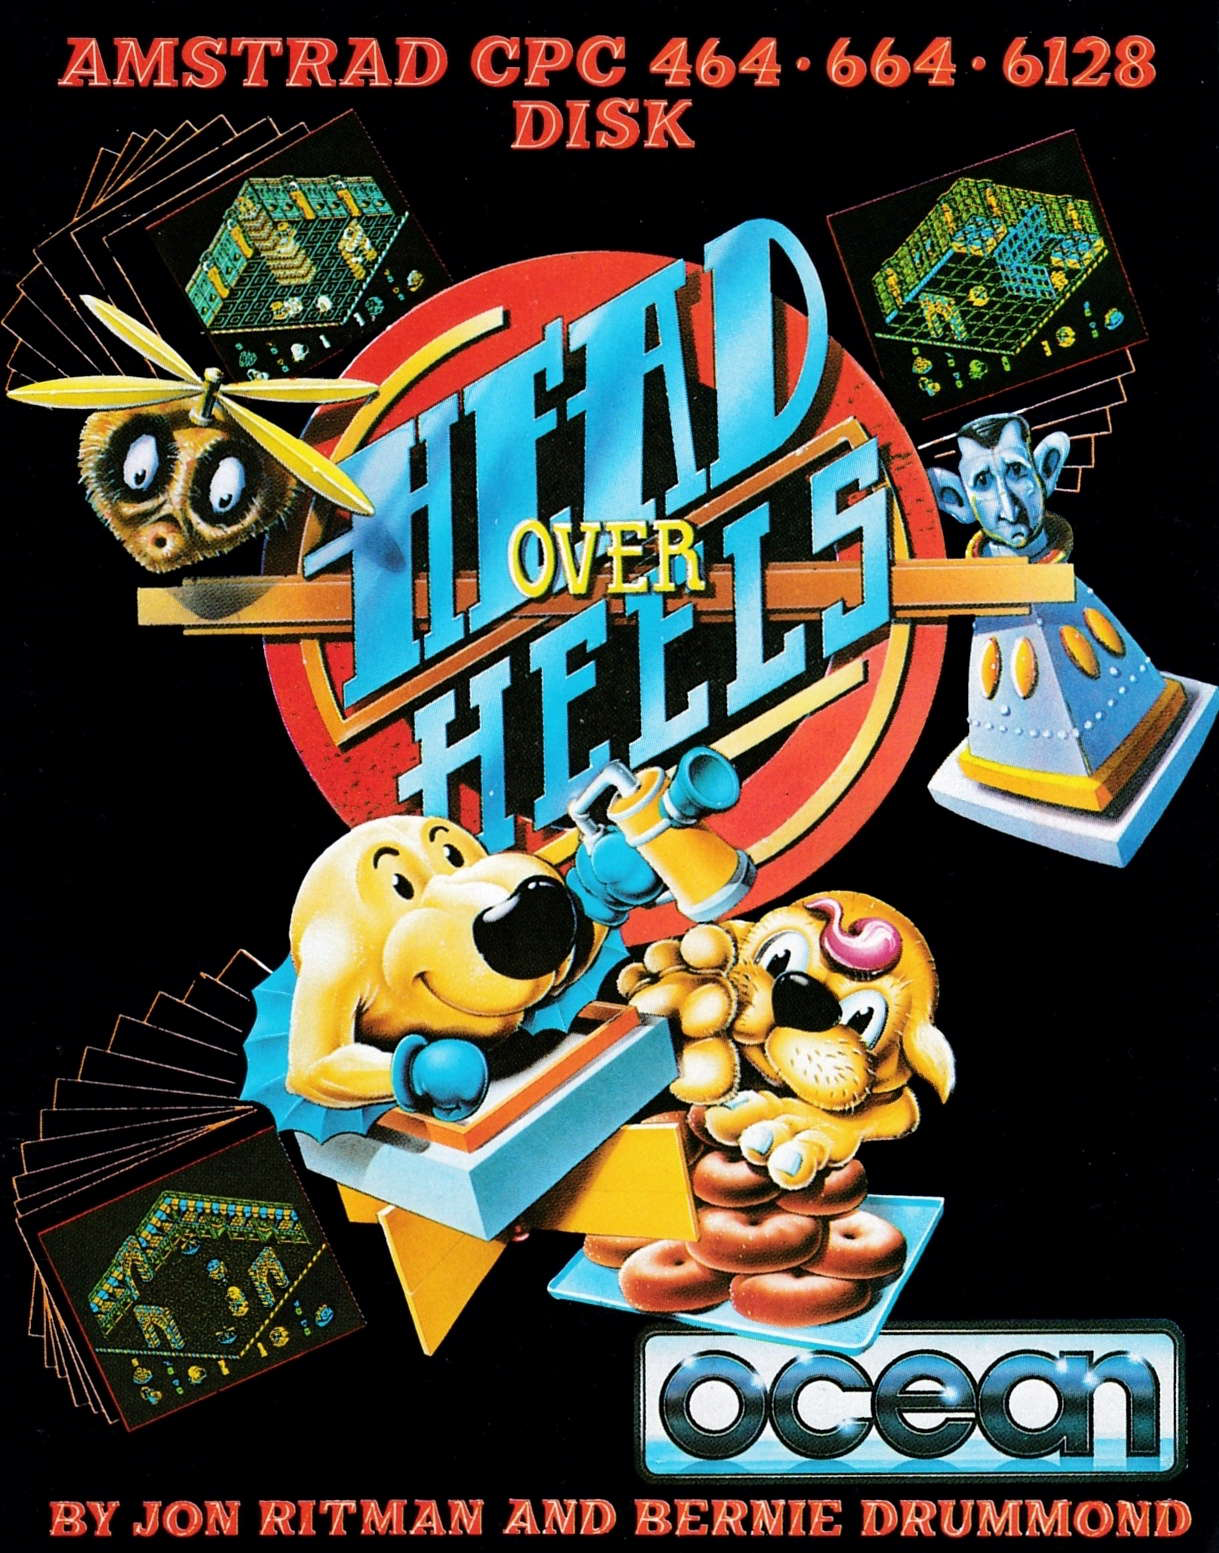 screenshot of the Amstrad CPC game Head over heels by GameBase CPC